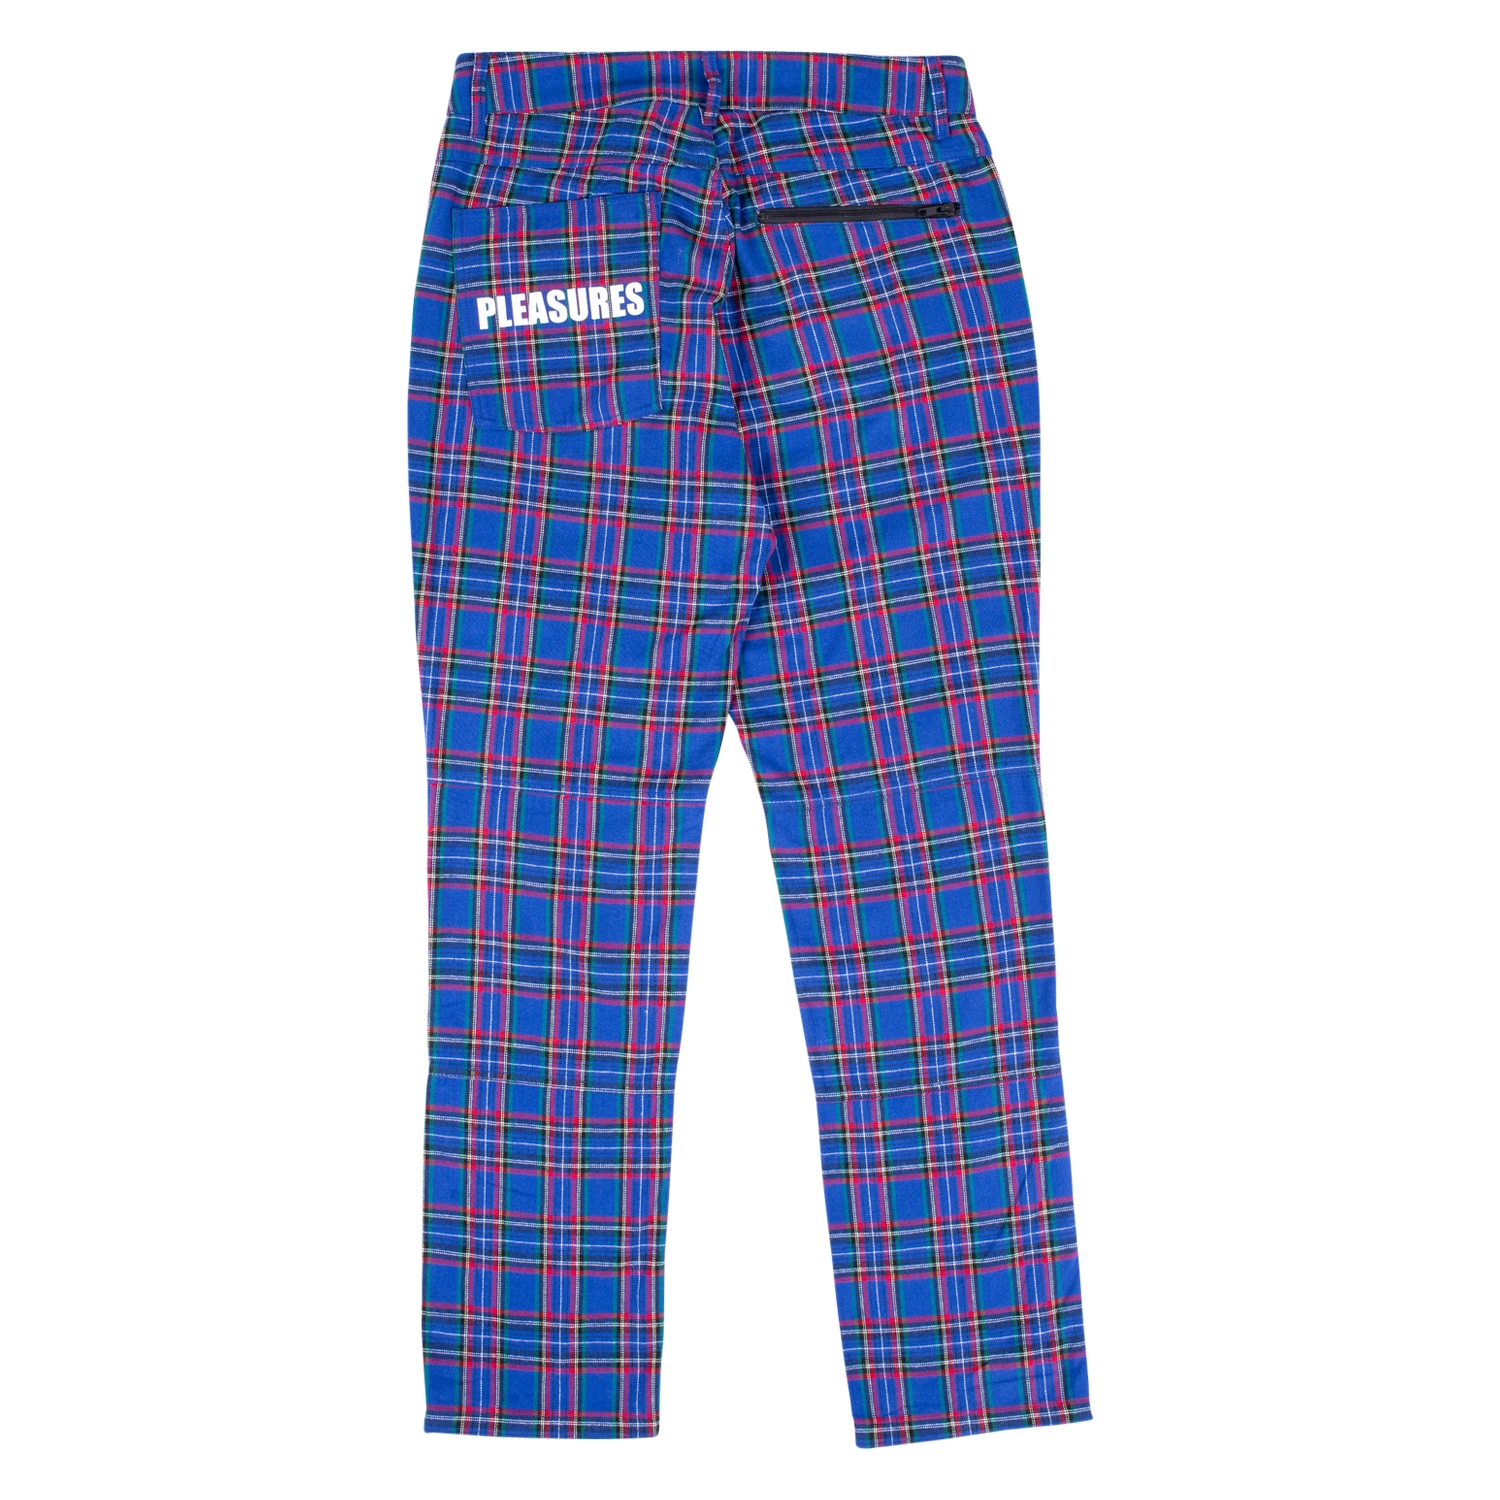 【PLEASURES/プレジャーズ】RESET PLAID PANTS パンツ / BLUE